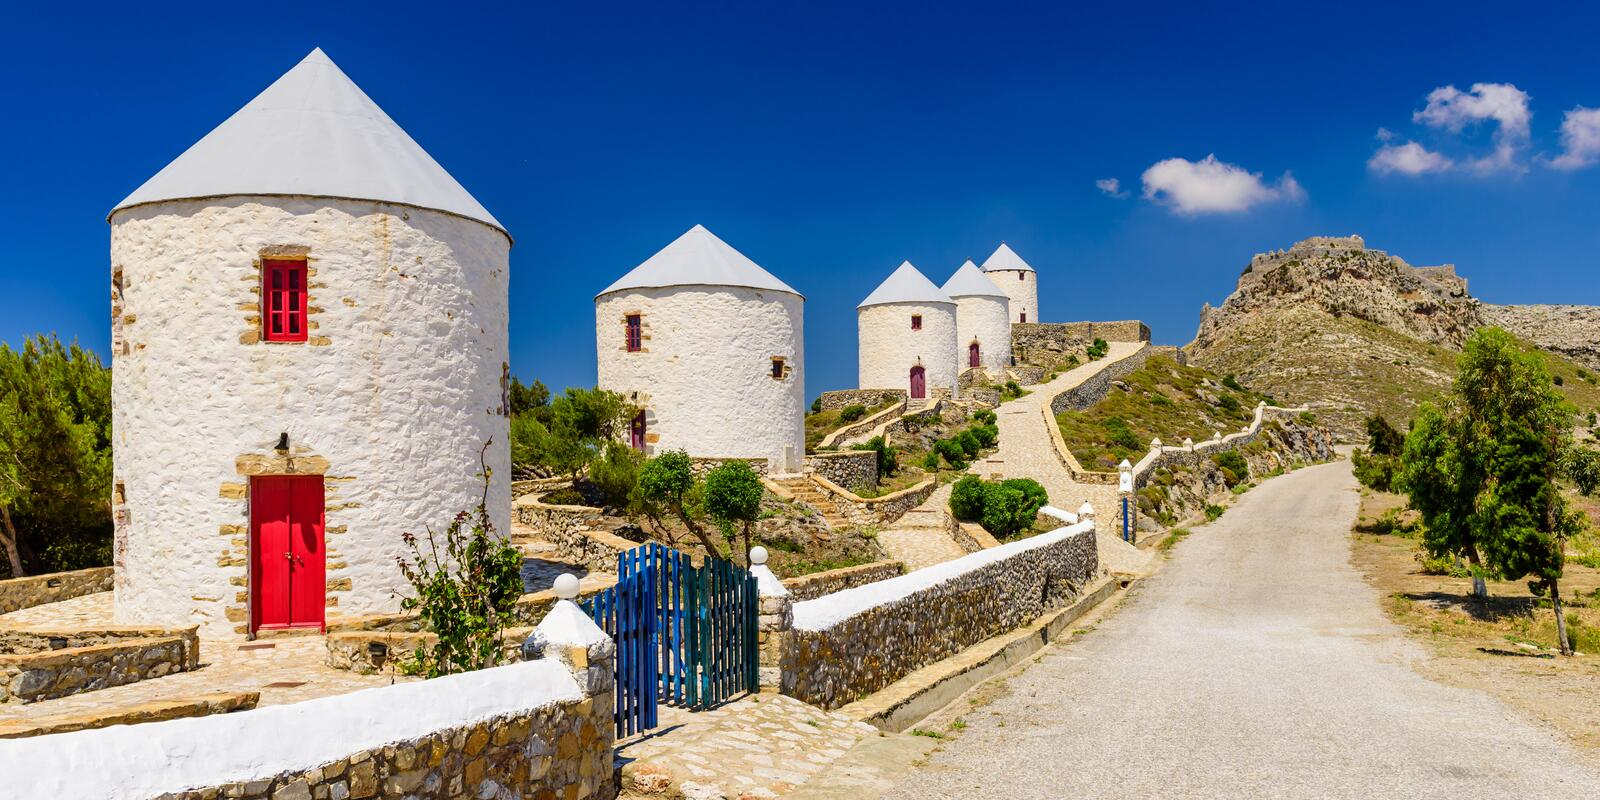 Easter trekking and sailing - Dodecanese one way Kos - Rhodes, max 4 guests, all inclusive!